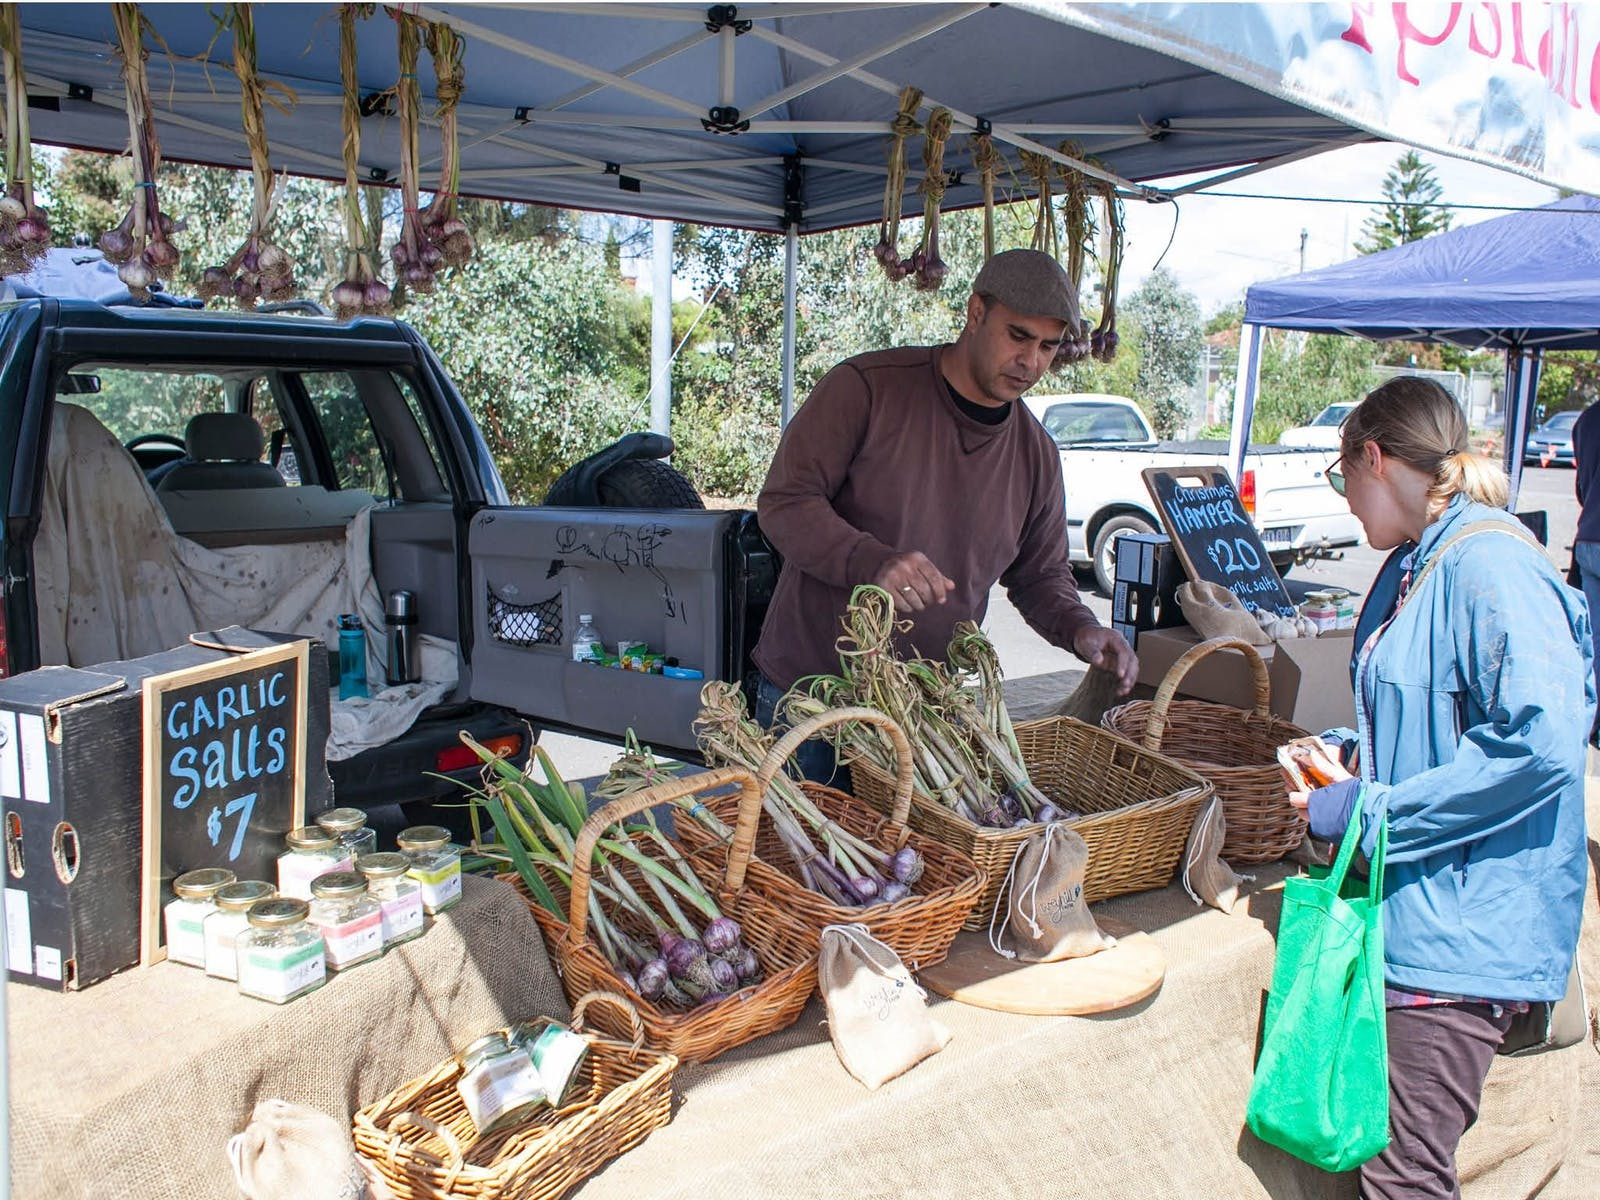 Local garlic at Coburg Farmers Markets